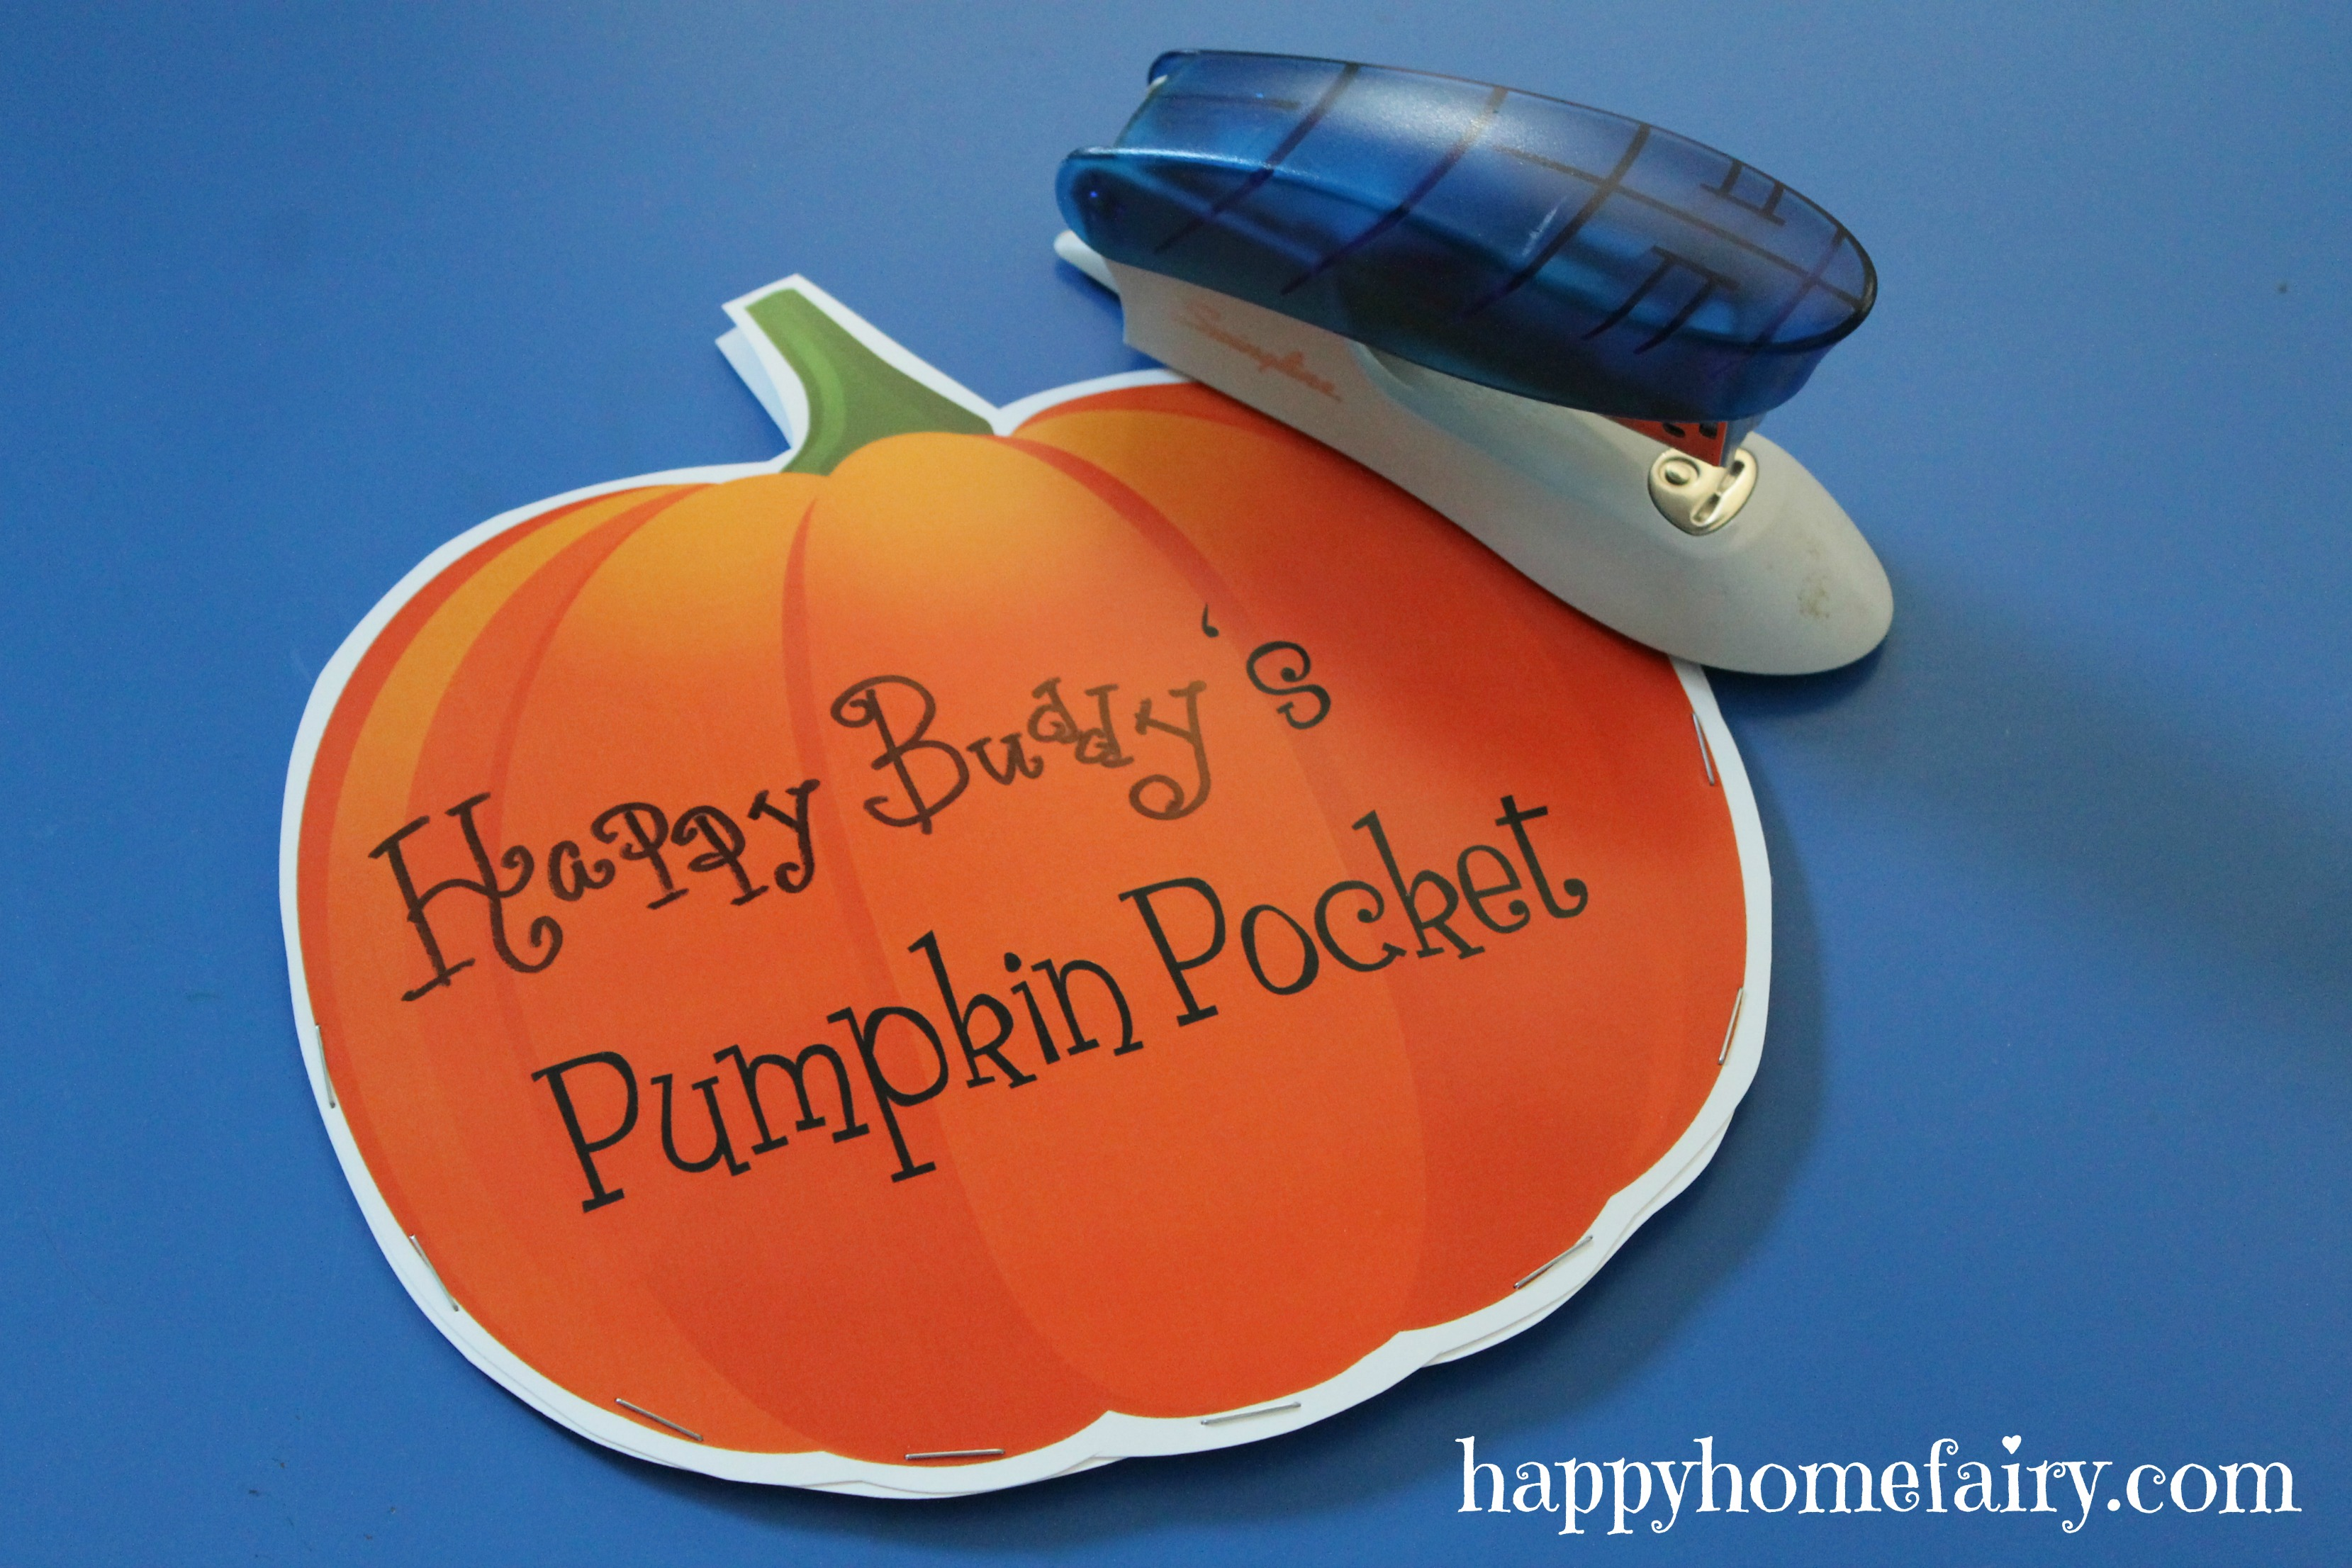 Pumpkin Pockets - FREE Printable! - Happy Home Fairy